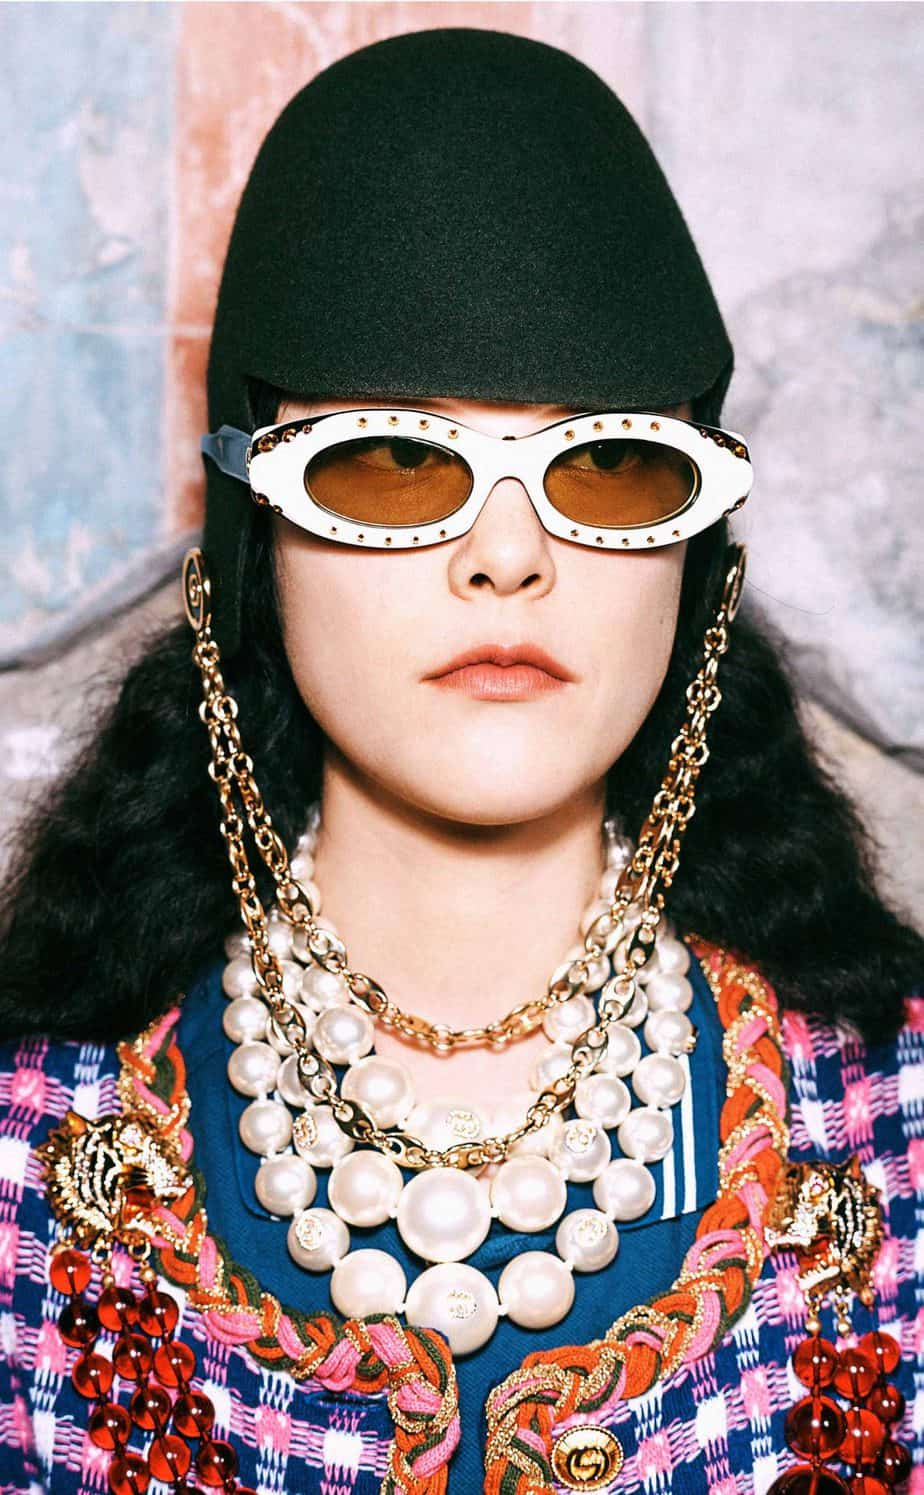 GUCCI, FALL 2019. WOMEN'S FASHION, Photographer Harmony Korine, Art Director, Christopher Simmonds - 82